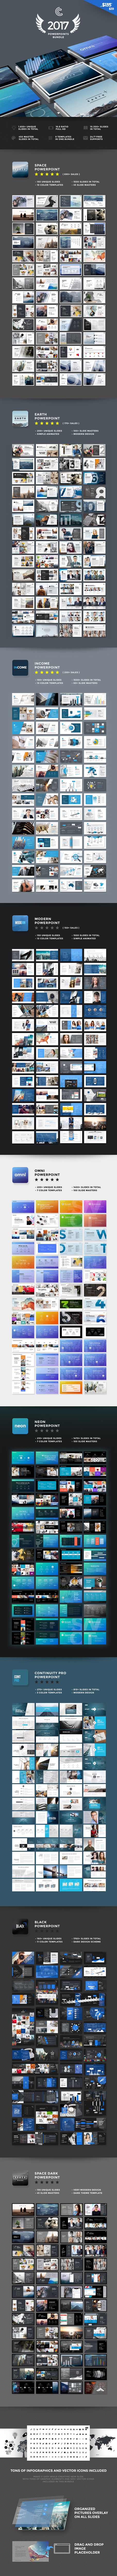 2017 PowerPoints Bundle - PowerPoint Templates Presentation Templates